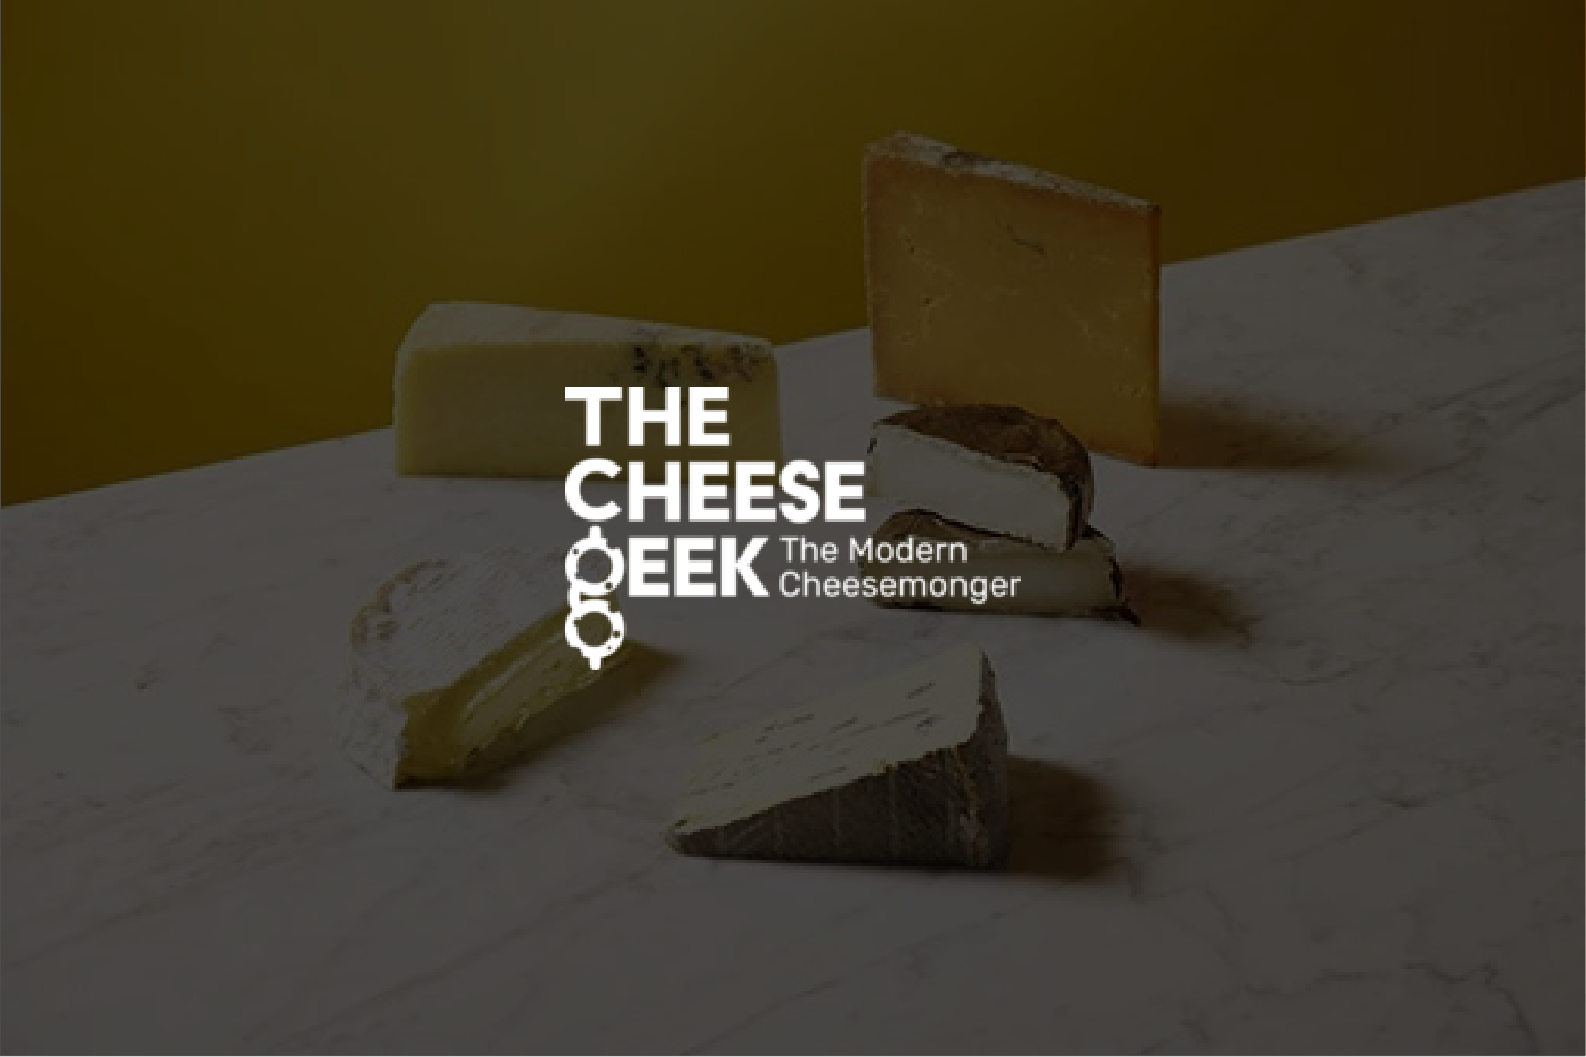 The Cheese Geek